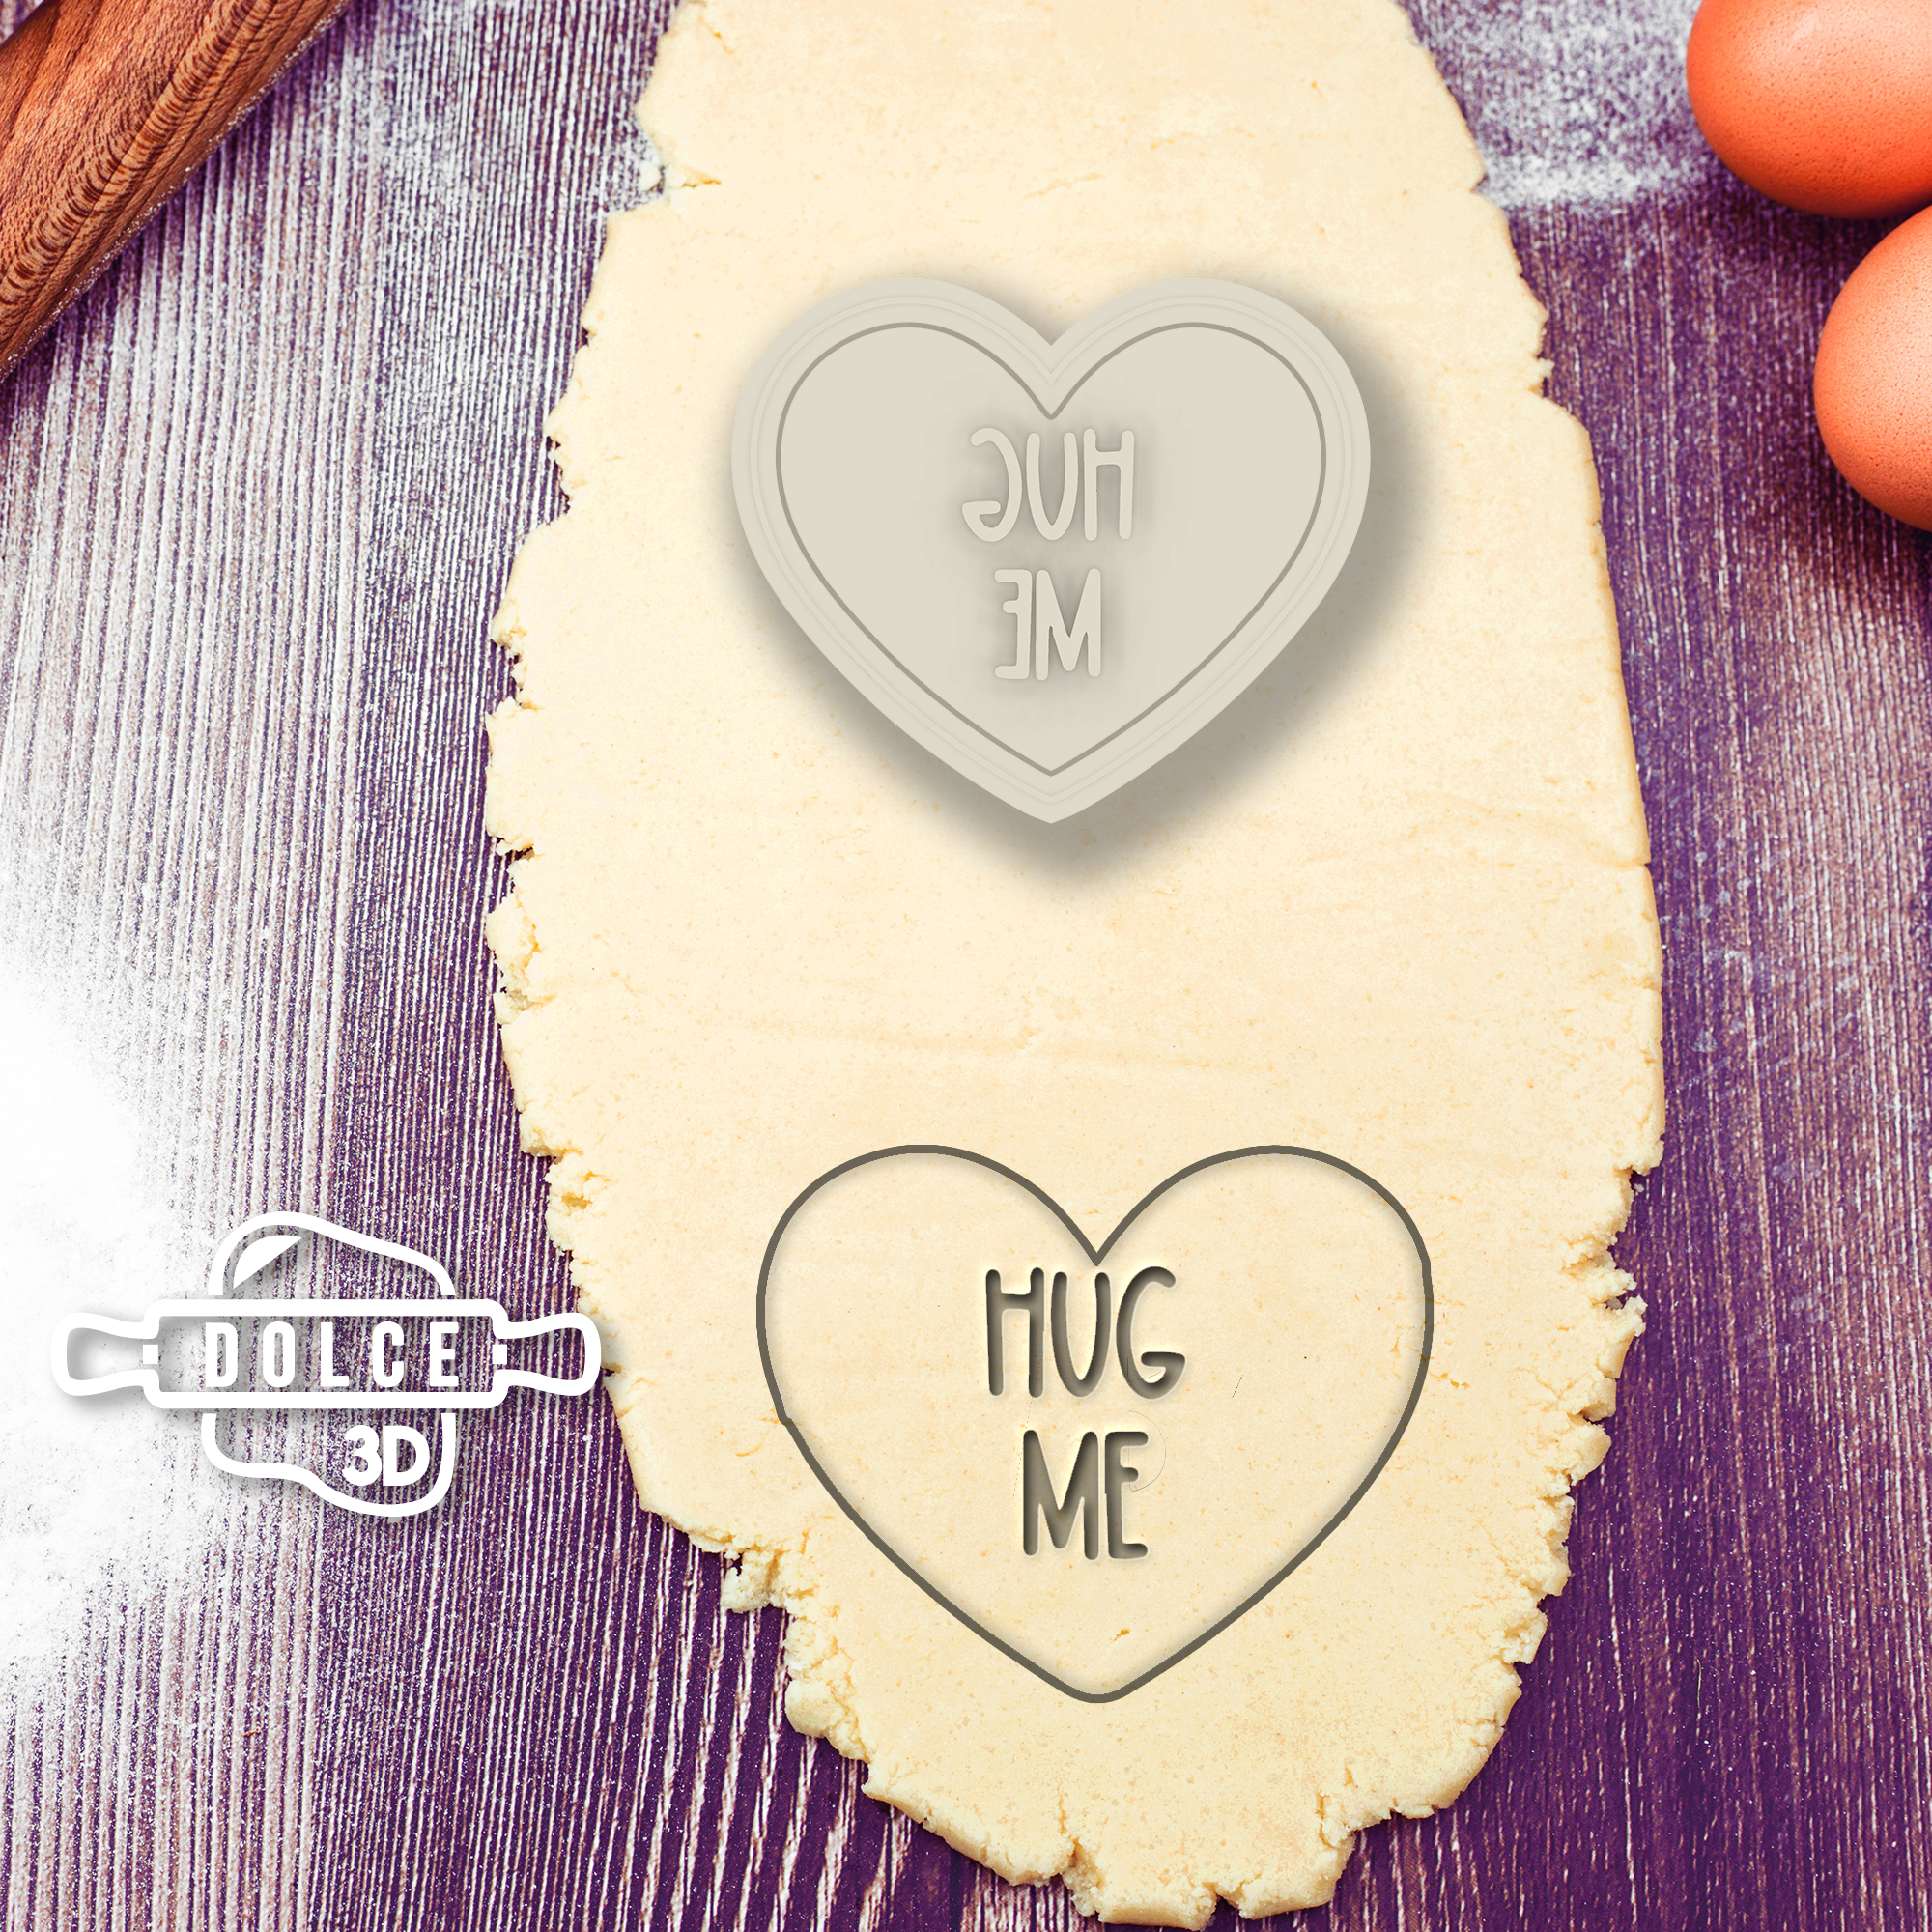 Heart Hug Me Cookie Cutter